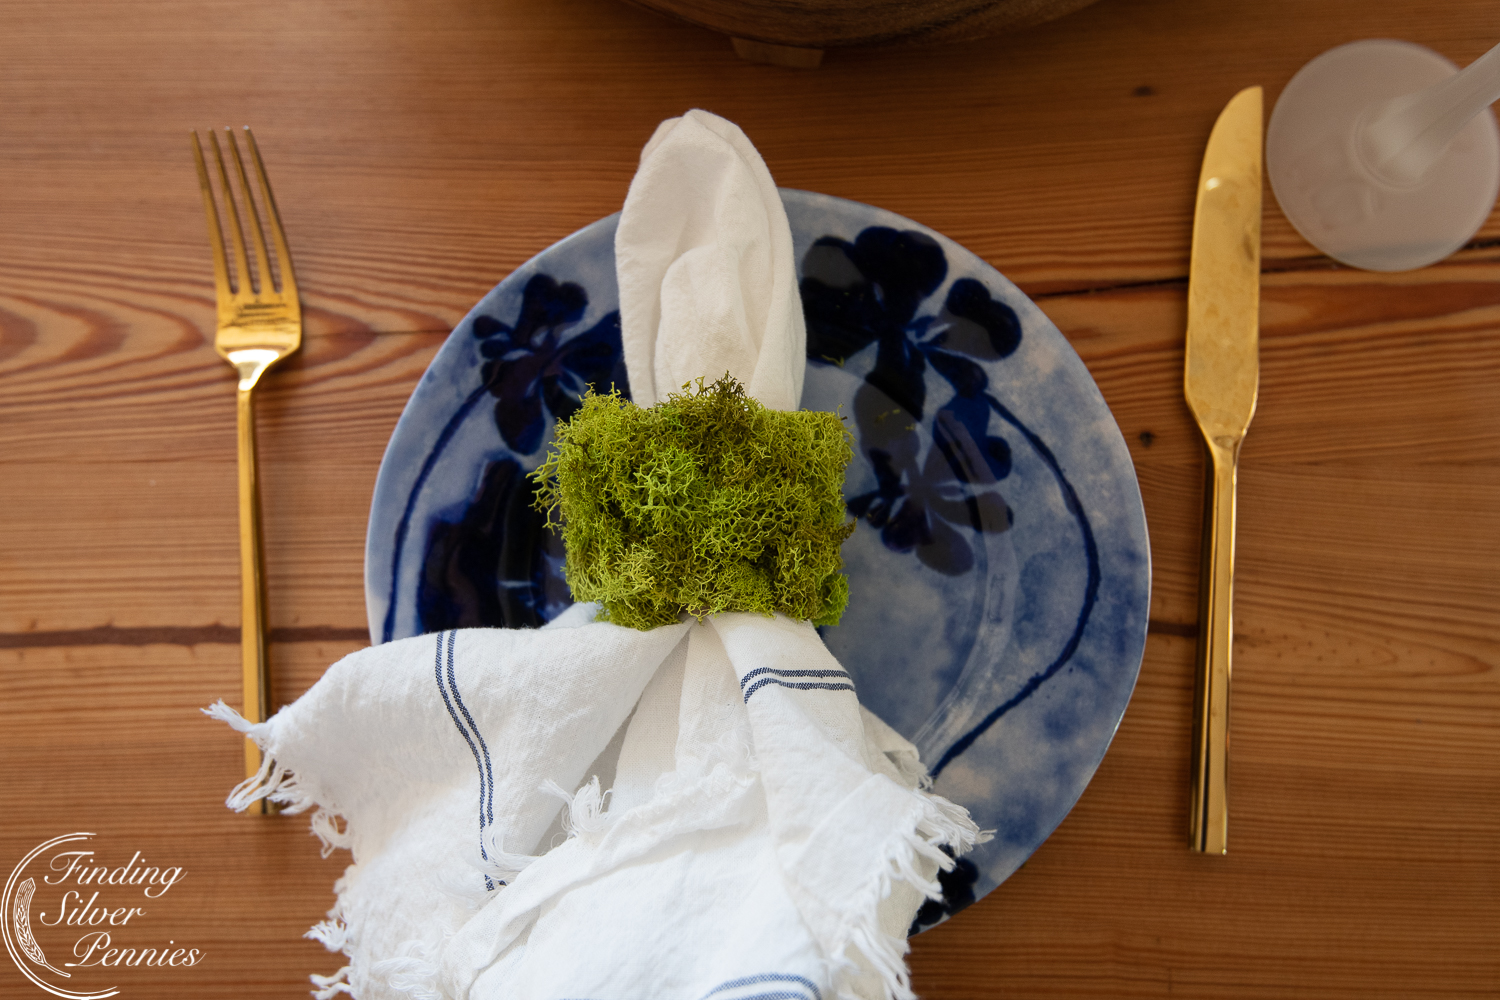 Simple table setting with gold silverware and moss napkin holders